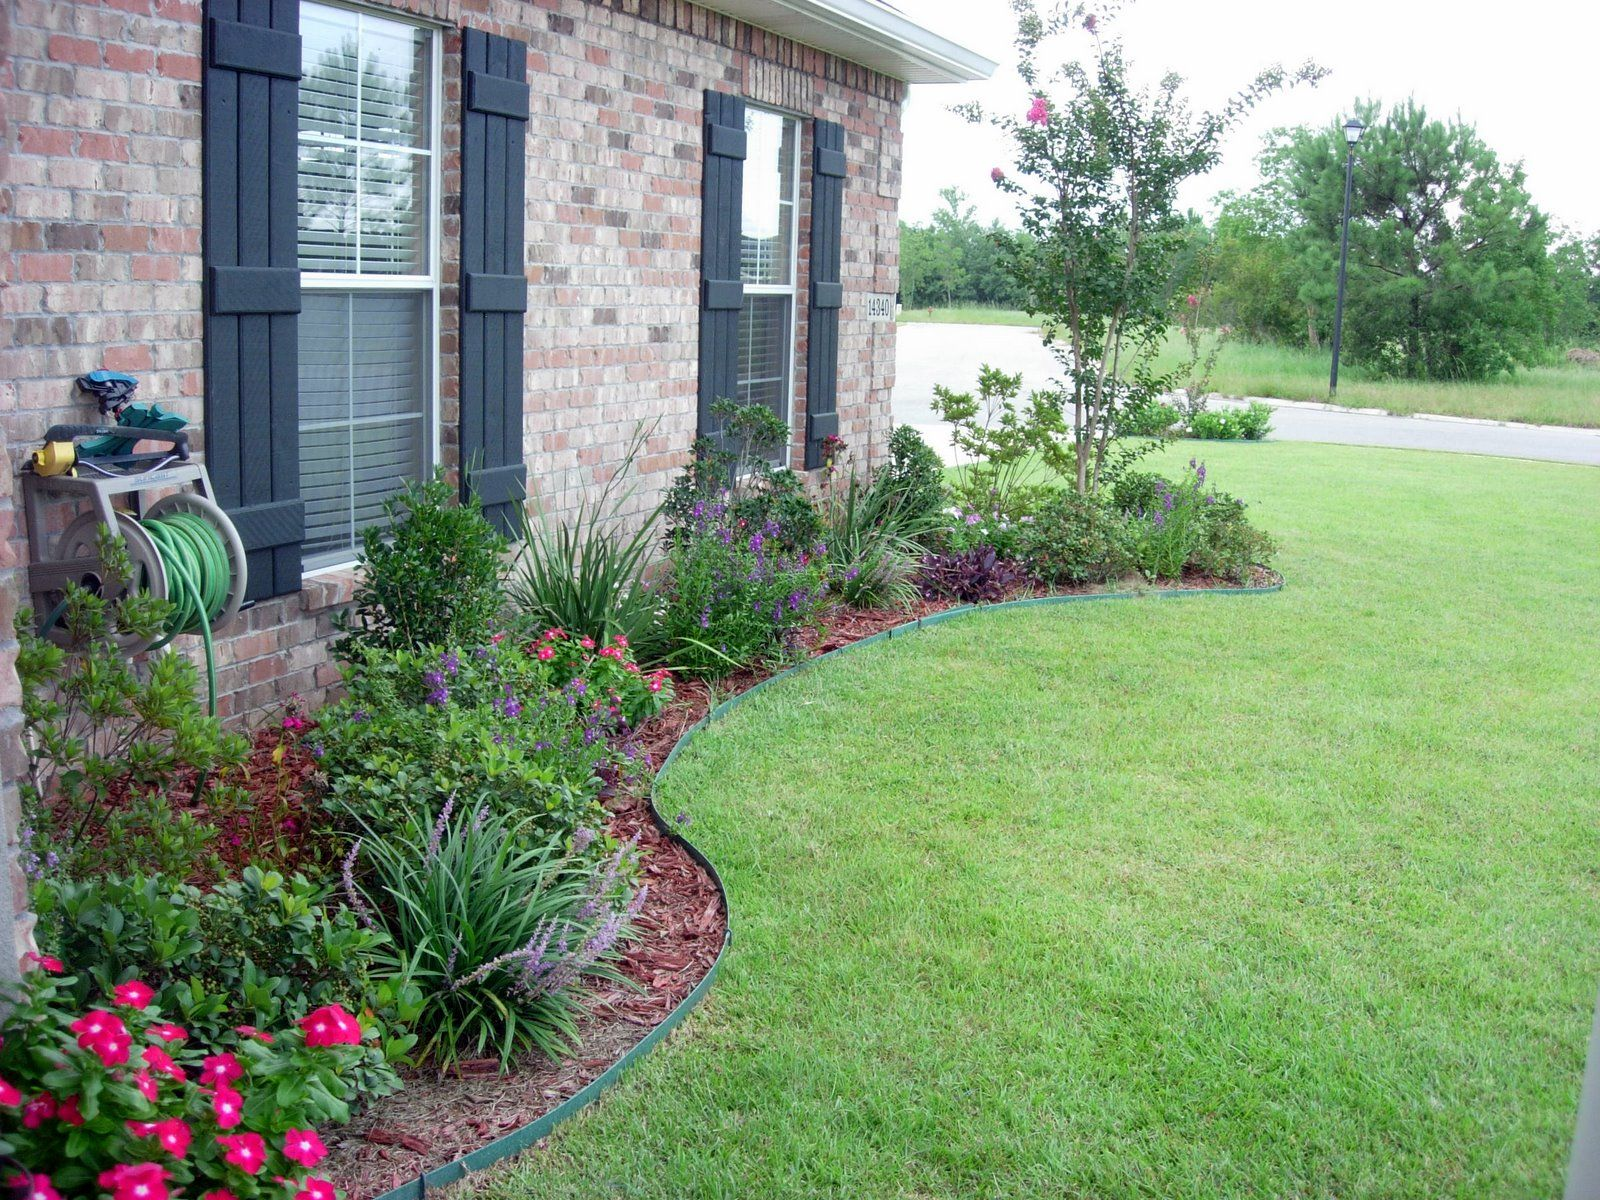 Flower bed designs for front of house use shrubs small trees to form the skeletal struct ure - Small home garden design ideas ...